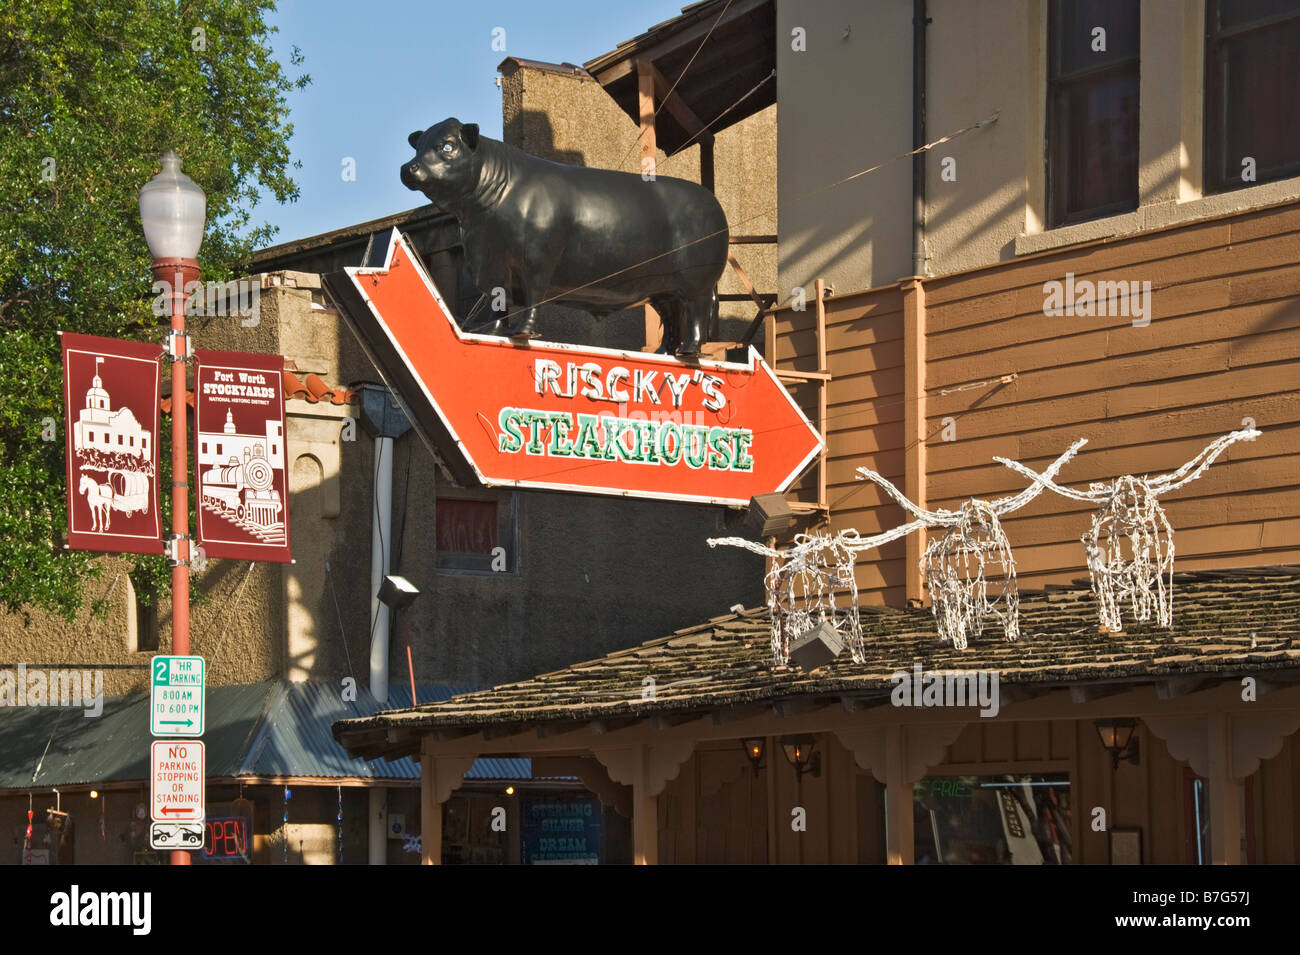 The Steakhouse Stock Photos & The Steakhouse Stock Images - Alamy